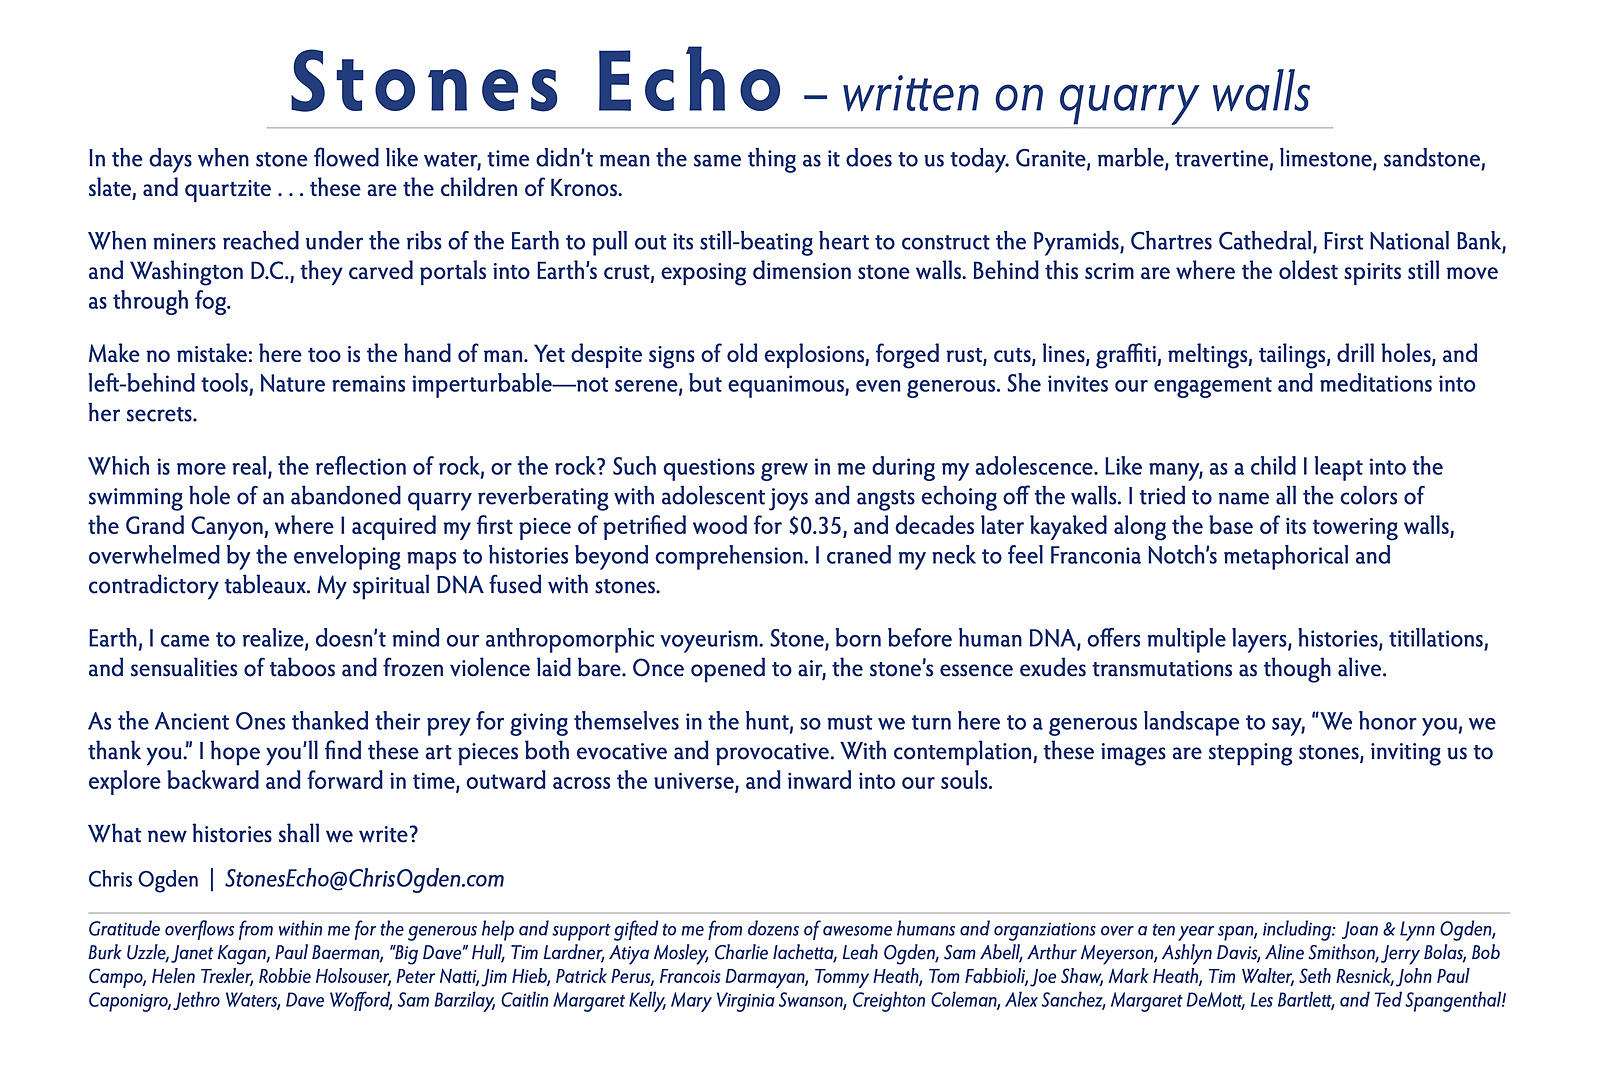 Stones Echo, written on quarry walls – Artist Statement by Chris Ogden